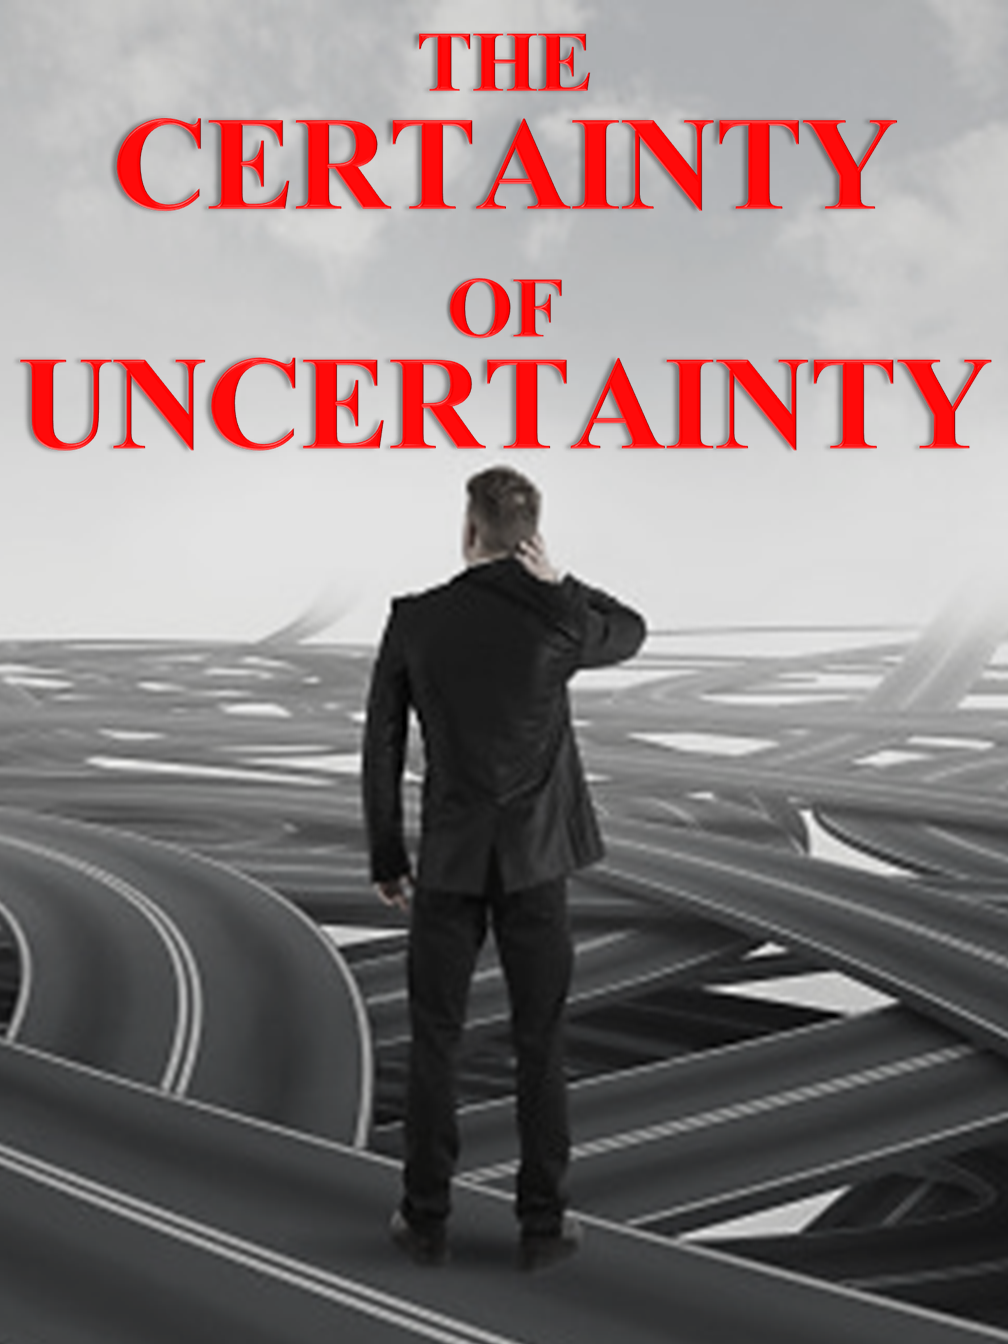 The Certainty of Uncertainty!